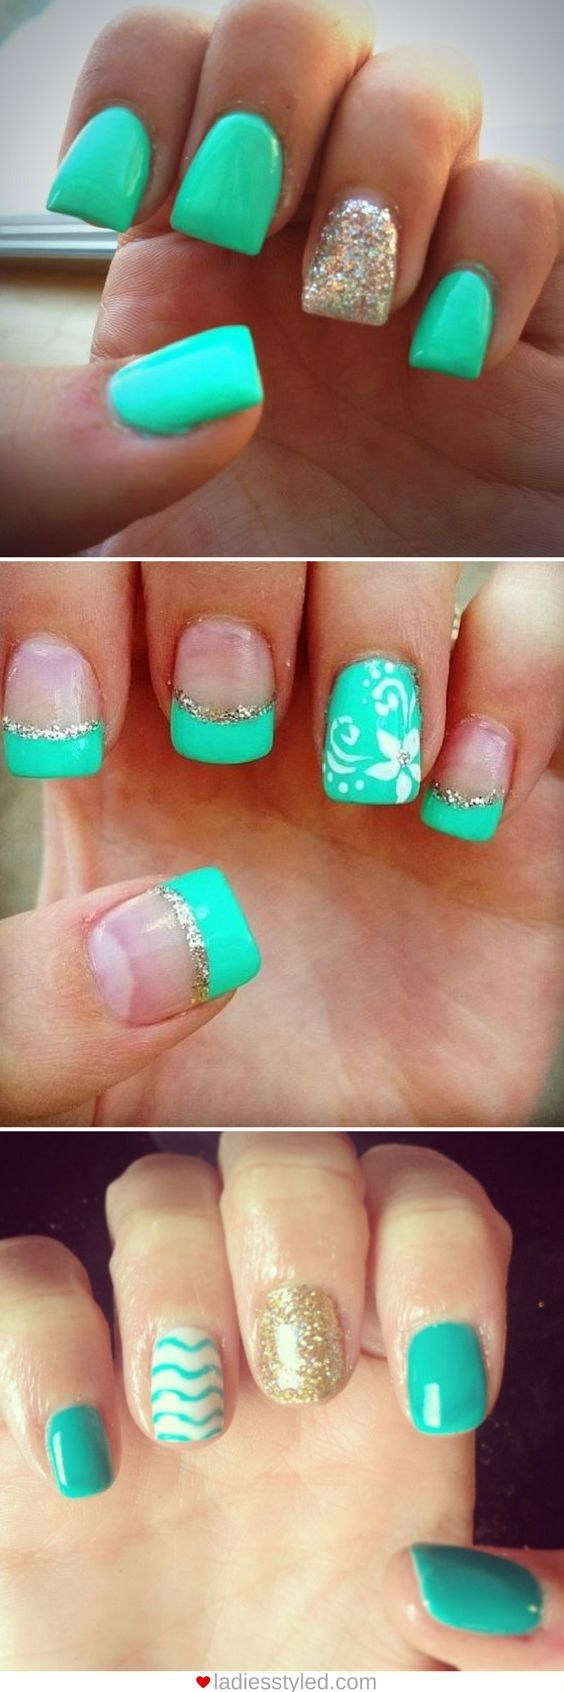 best 25+ beautiful nail designs ideas on pinterest | pretty nails